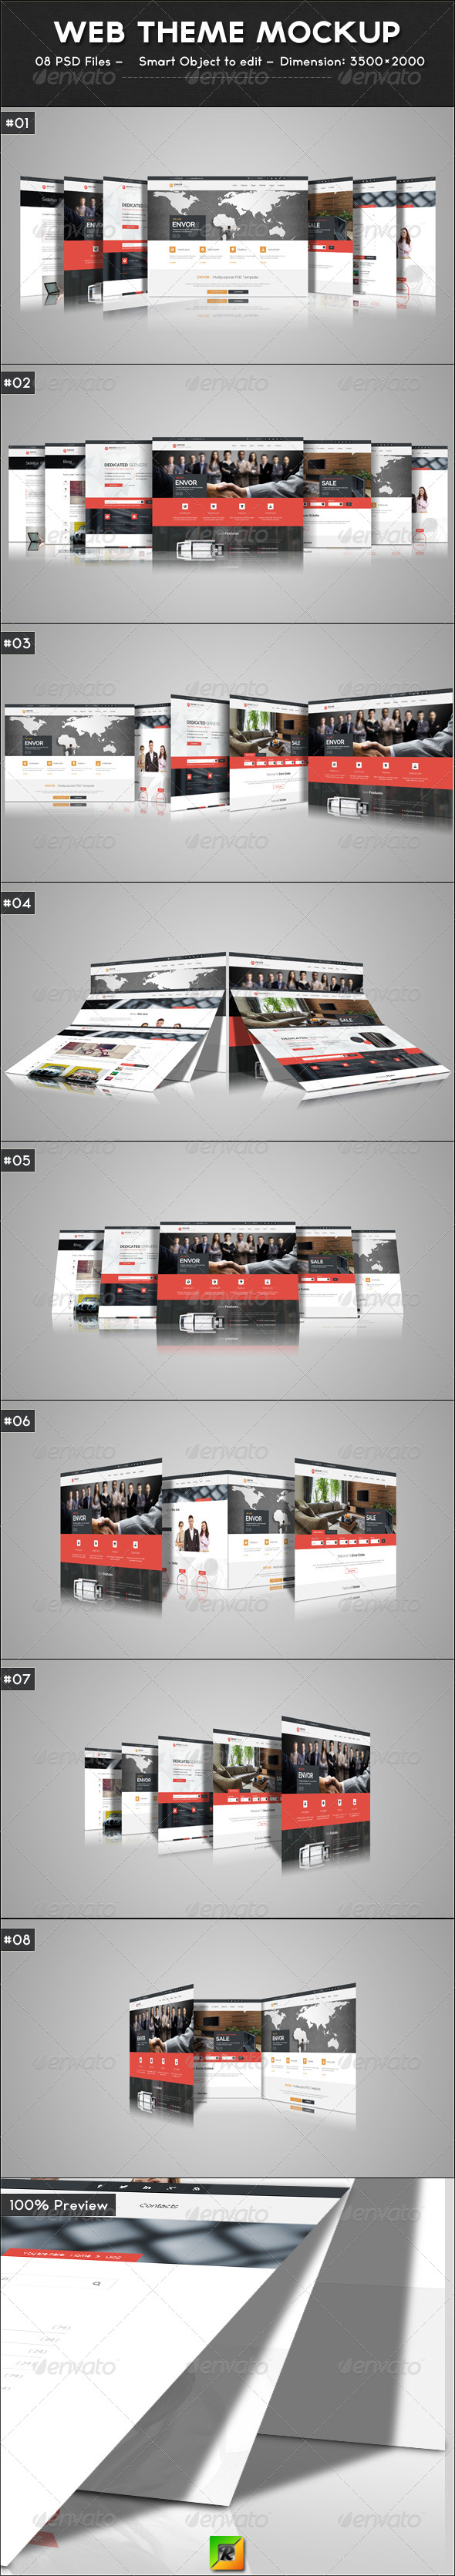 GraphicRiver Web Theme Mockup 6876183